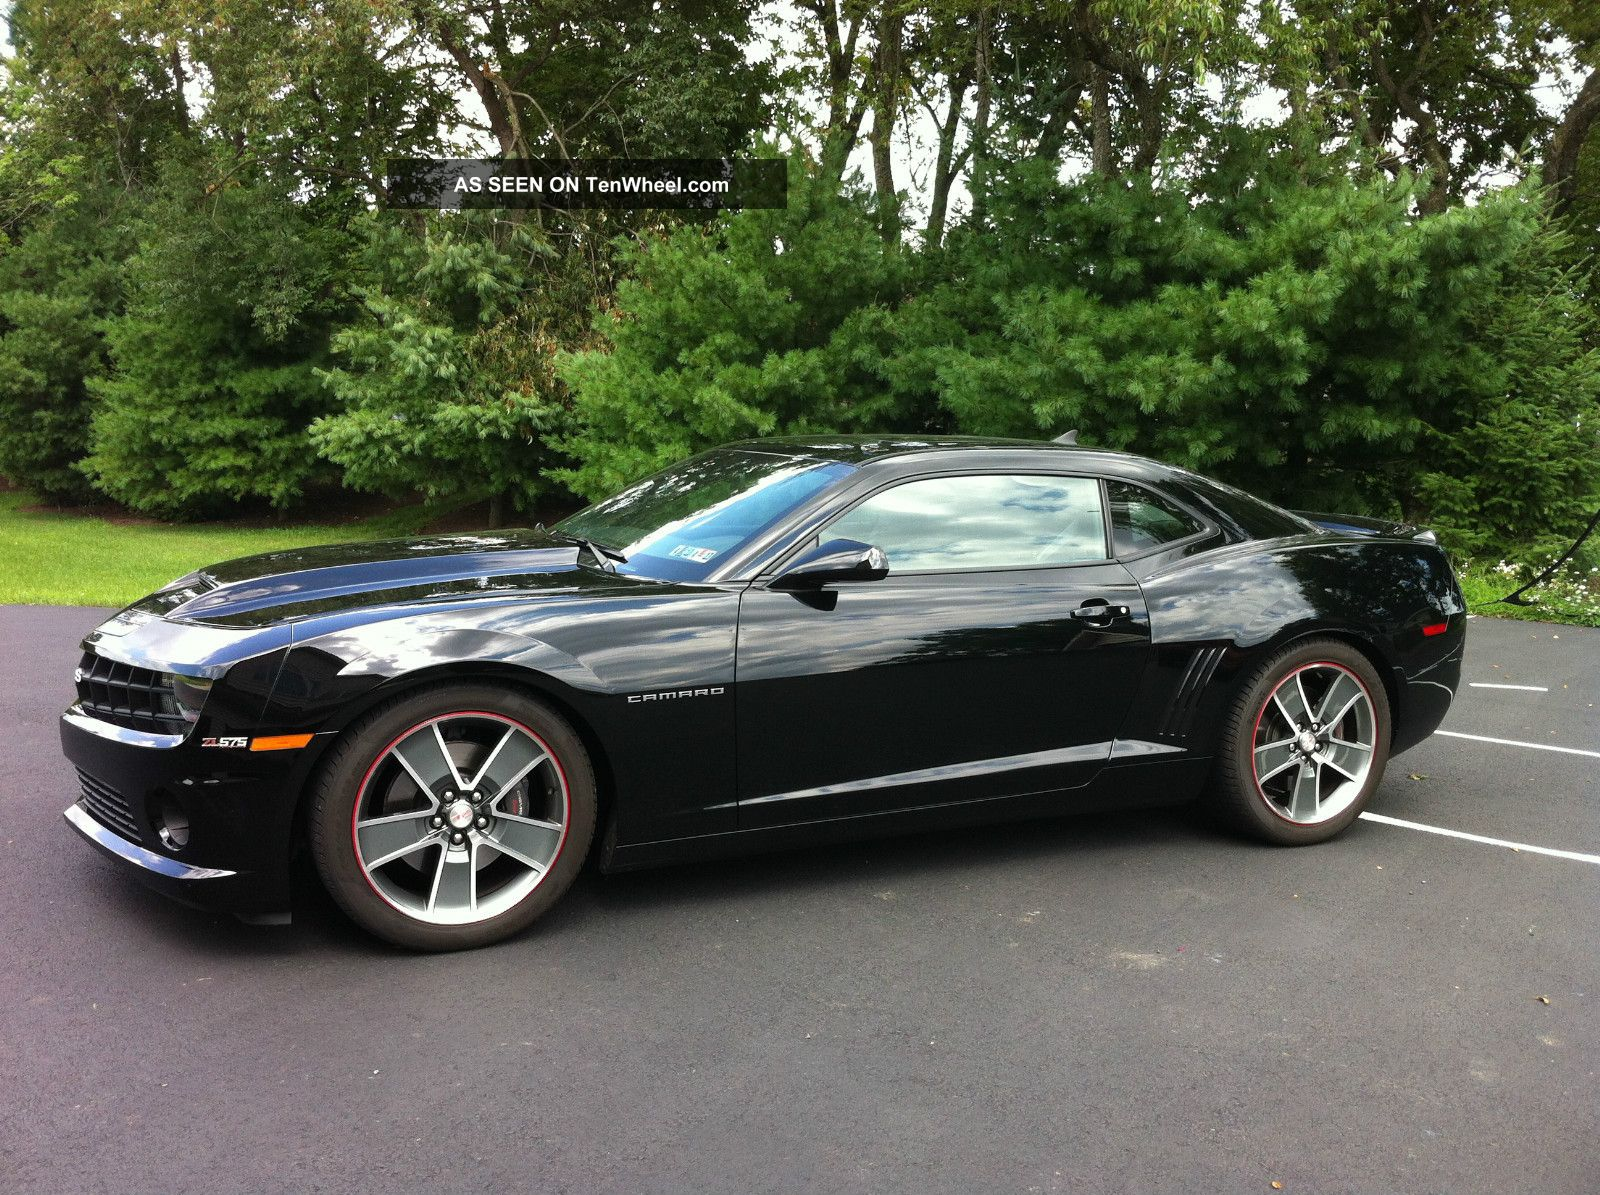 2010 Chevrolet Camaro Zl575 Camaro photo